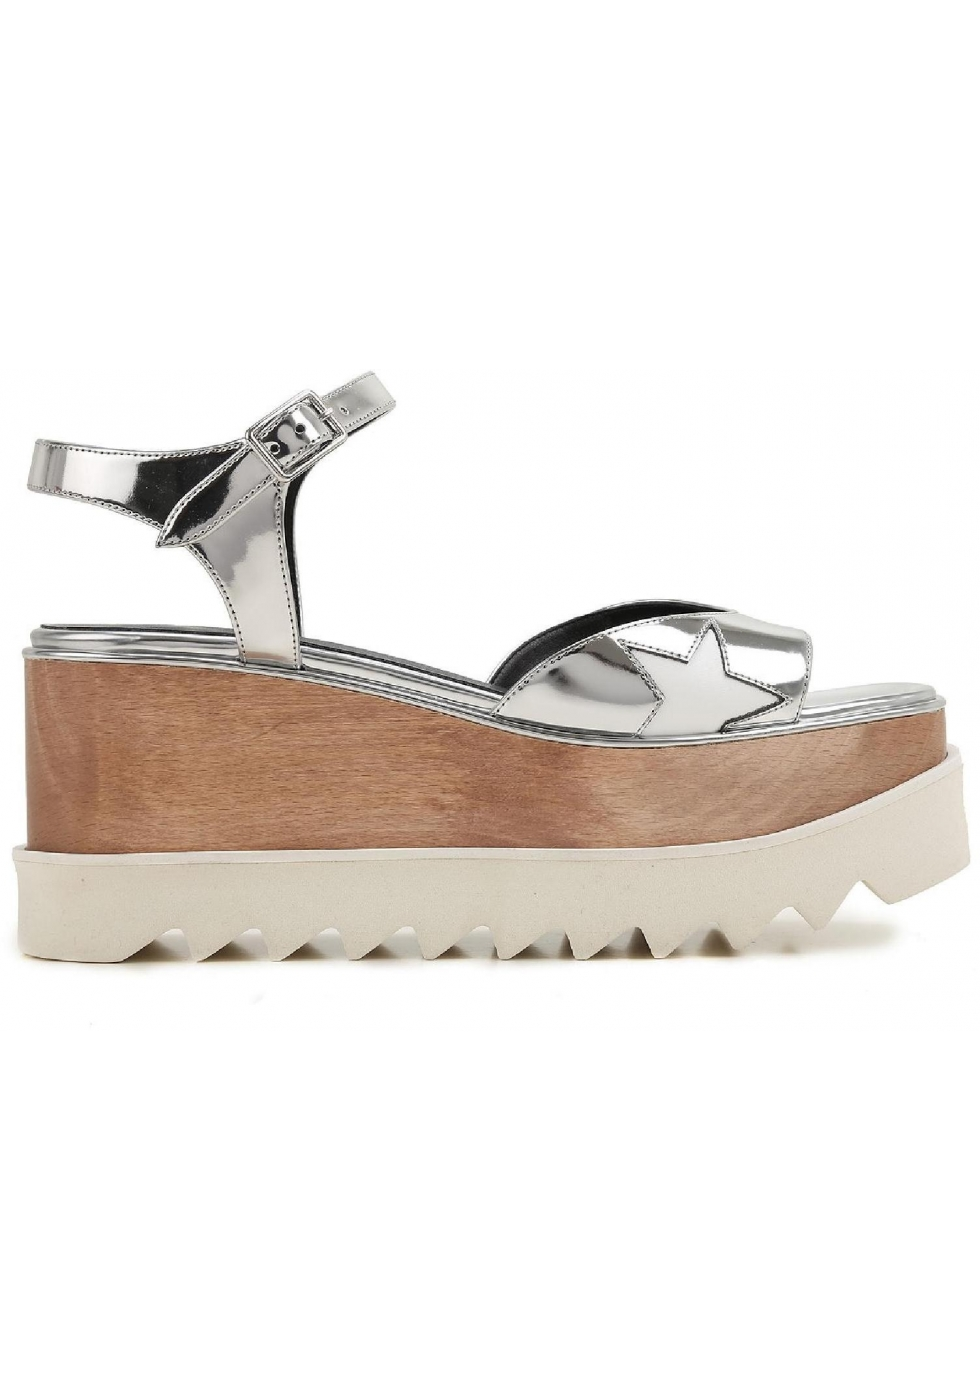 Stella McCartney Vegan Wedge Sandals outlet reliable outlet pictures cheap sale lowest price elfzXqYB0b